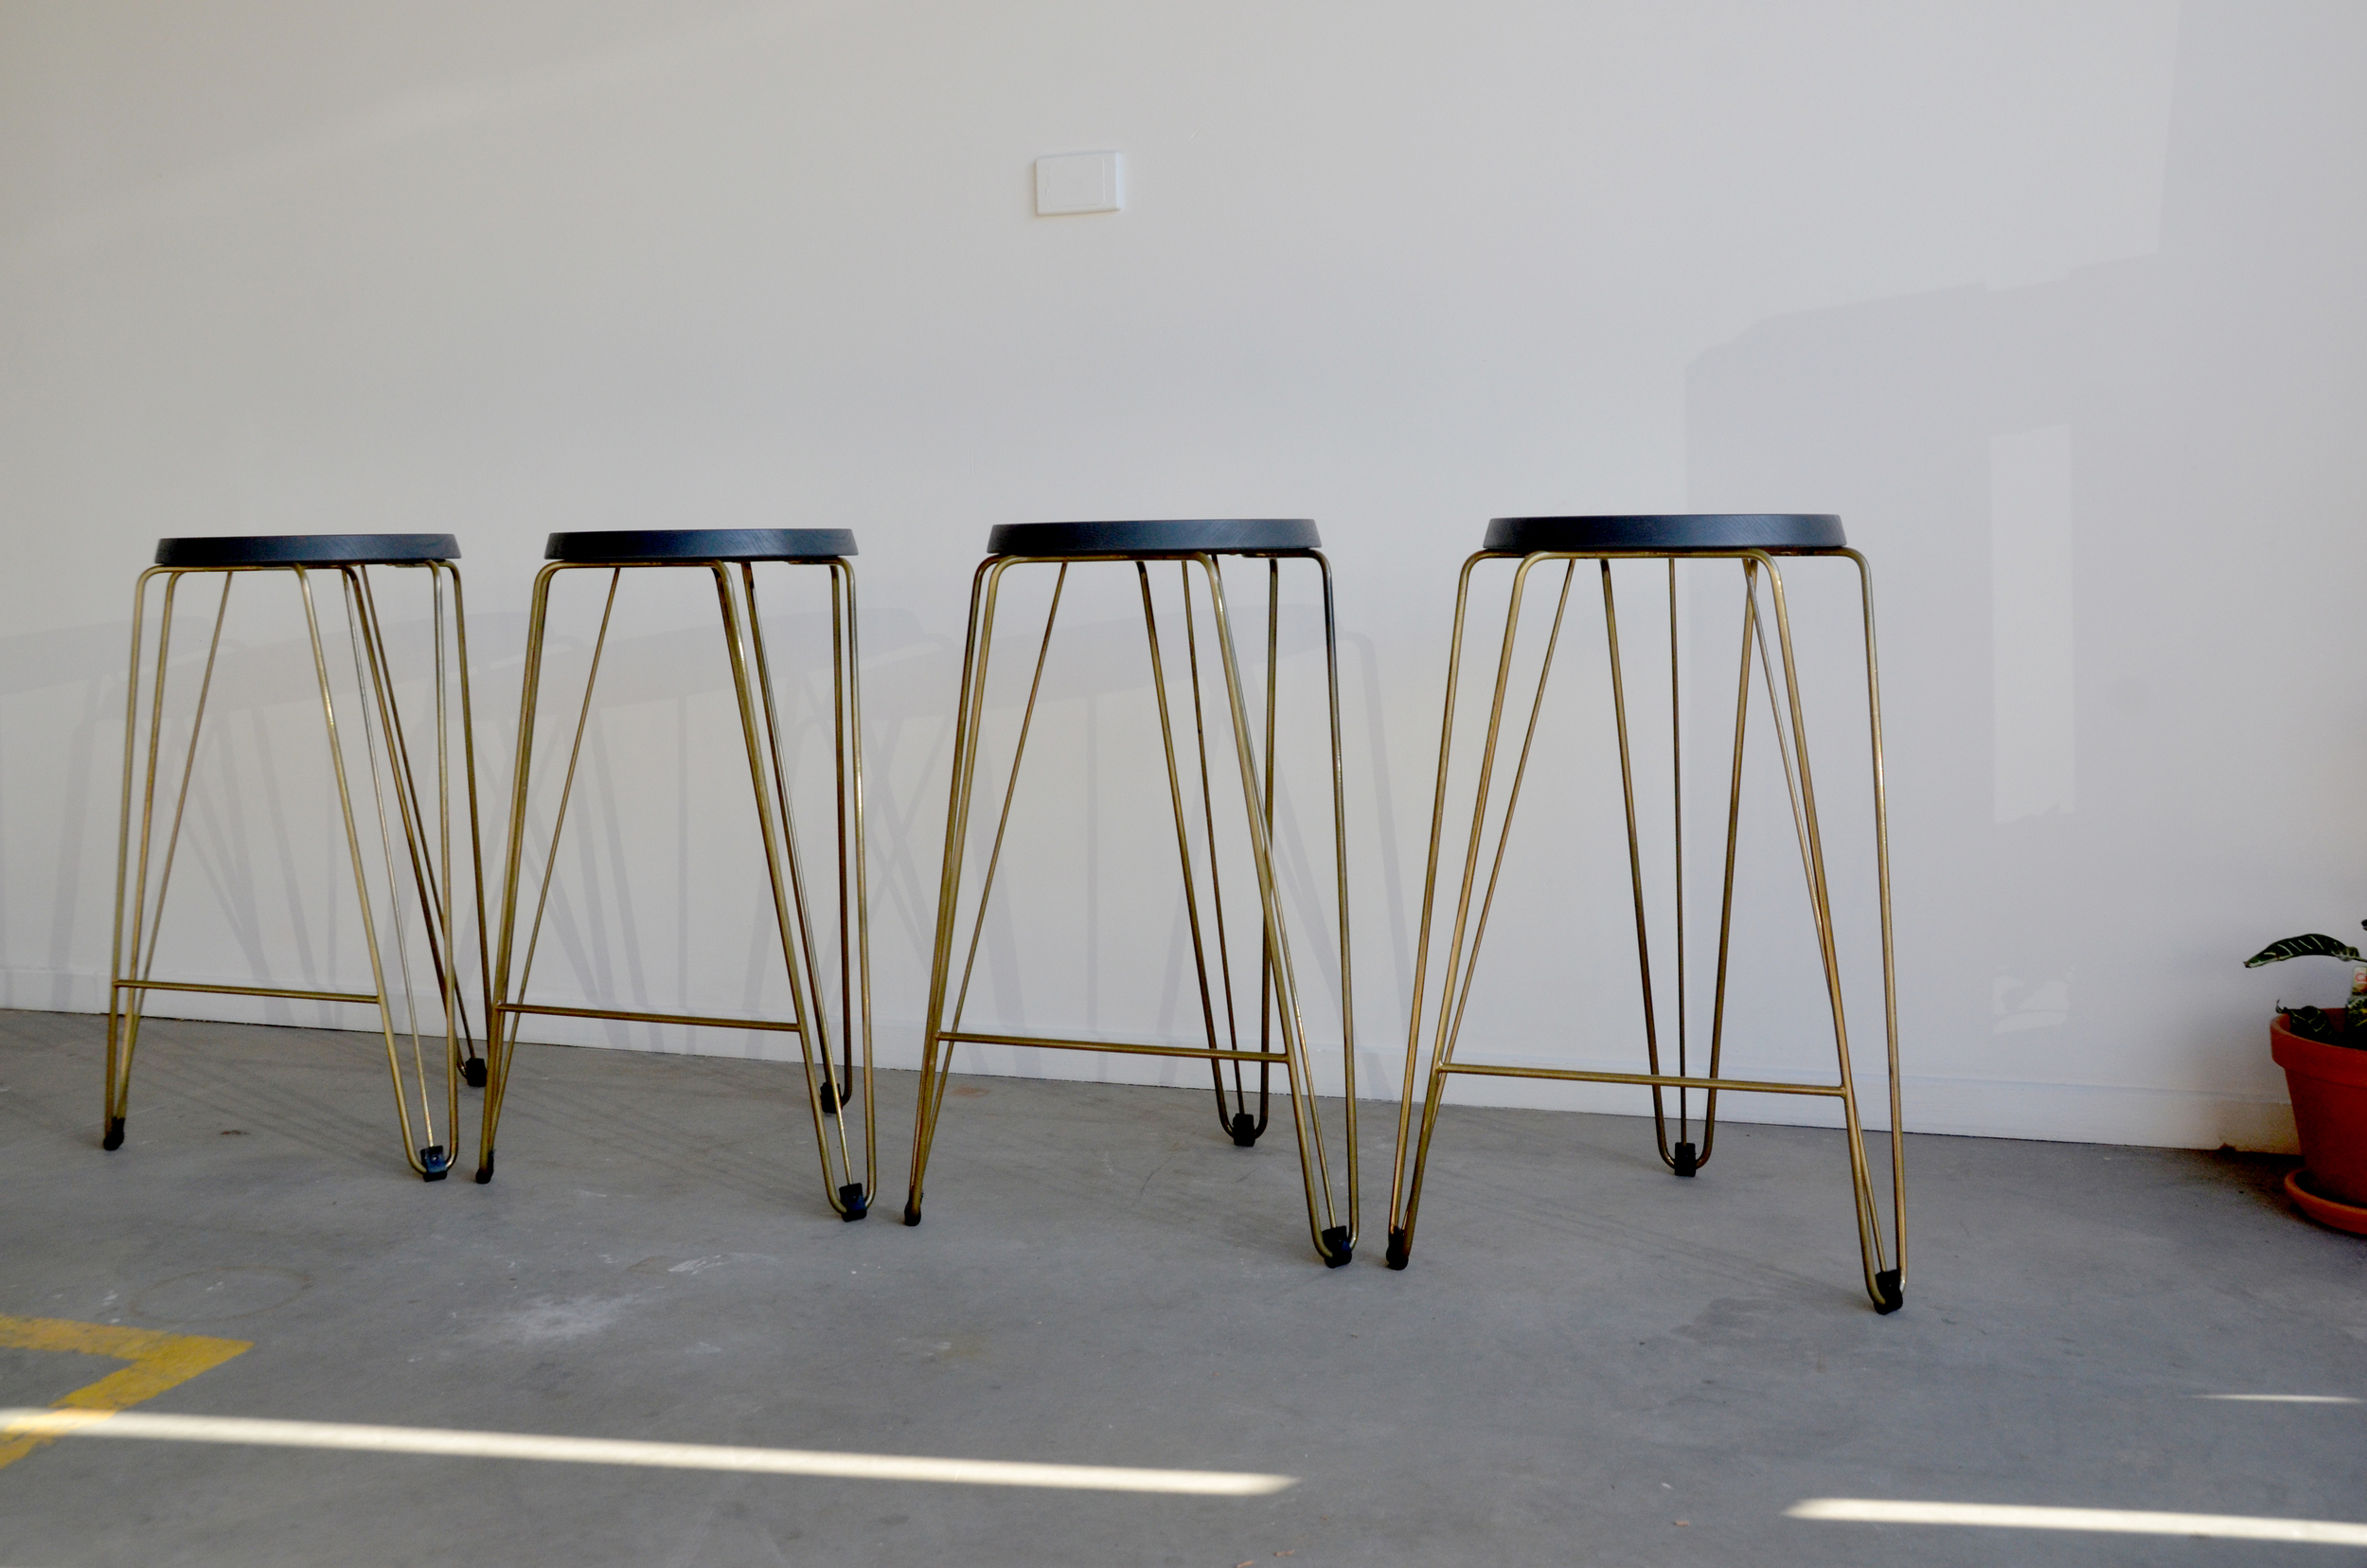 Tuckbox Design Rex/Lozenge bar stools